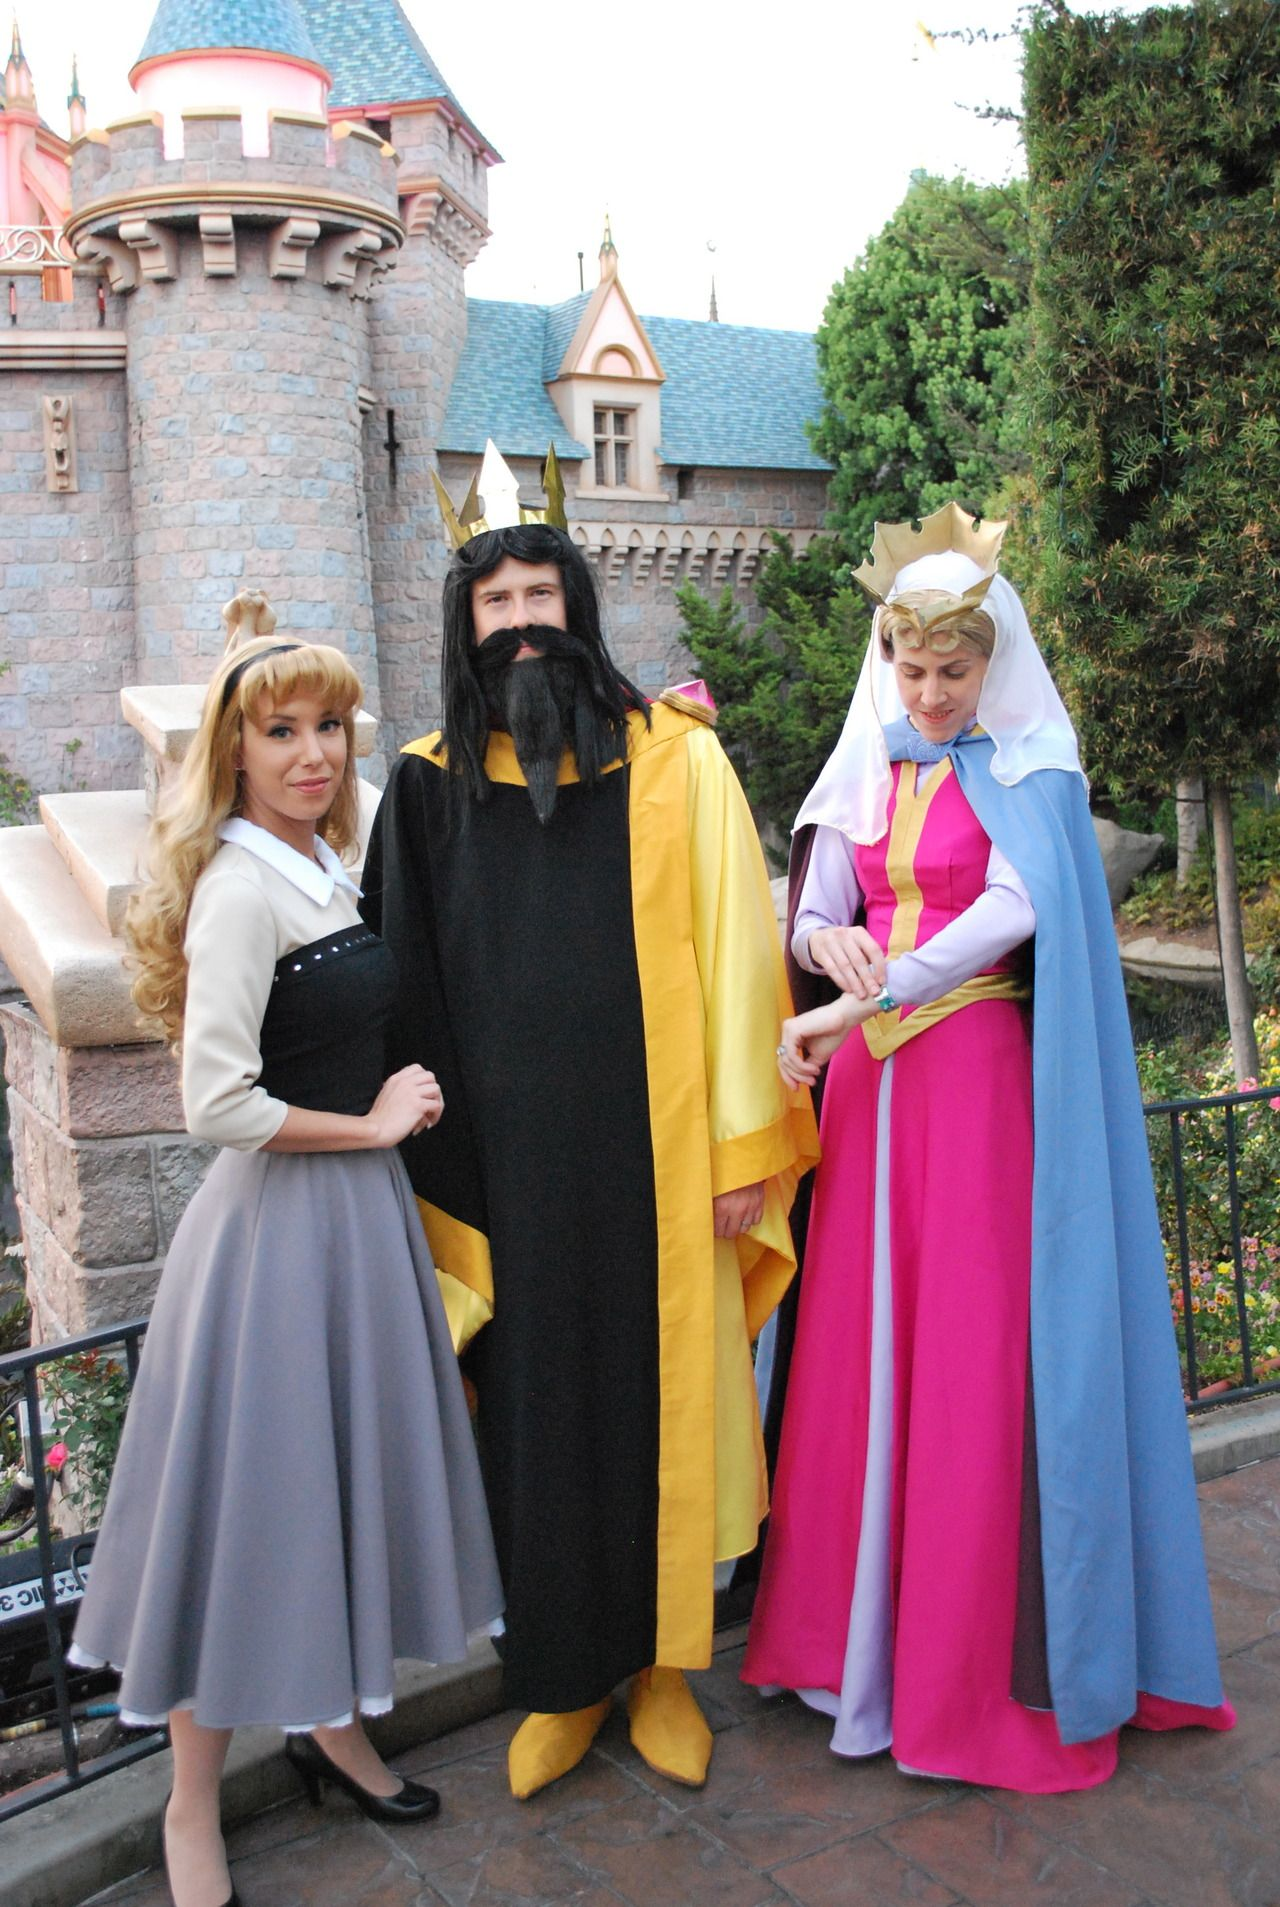 Hahaha, weird Disneyland costumes. All I can picture is the moms ...